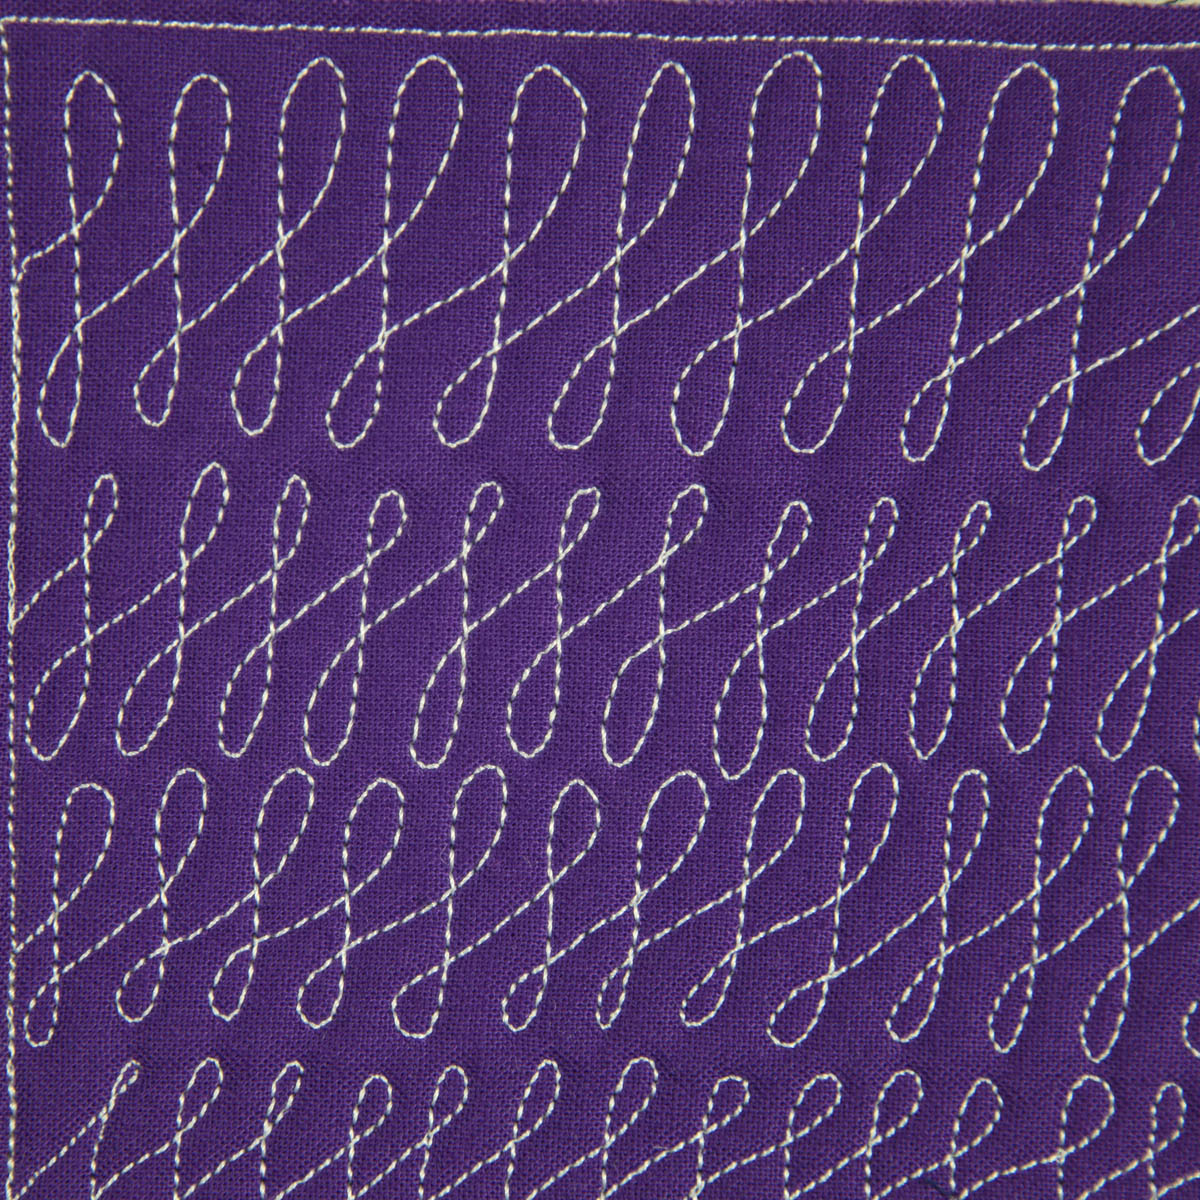 Free Motion Quilting Designs For Sashing : The Free Motion Quilting Project: Day 9 - Cursive F s